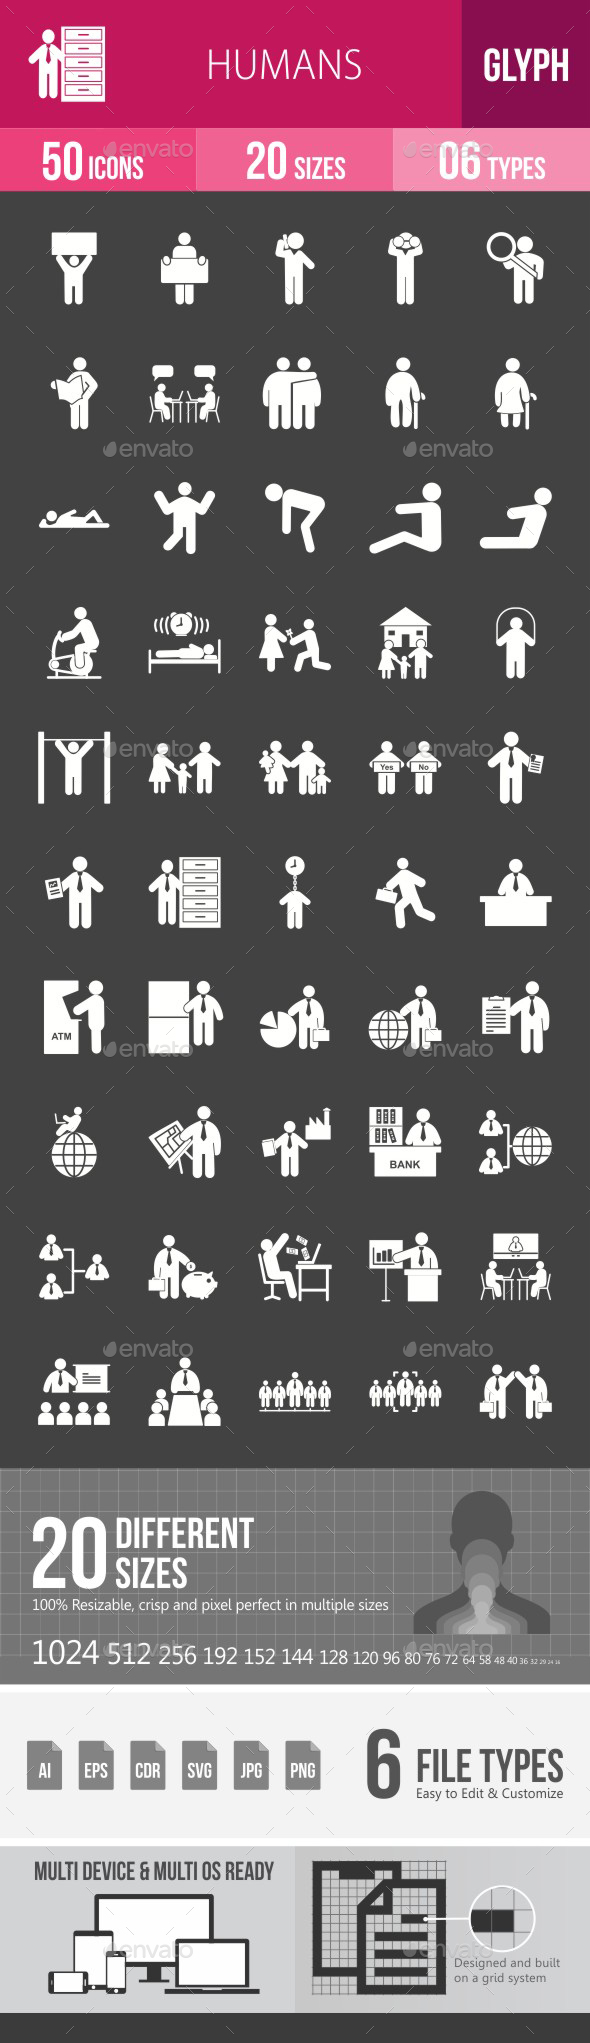 Humans Glyph Inverted Icons - Icons